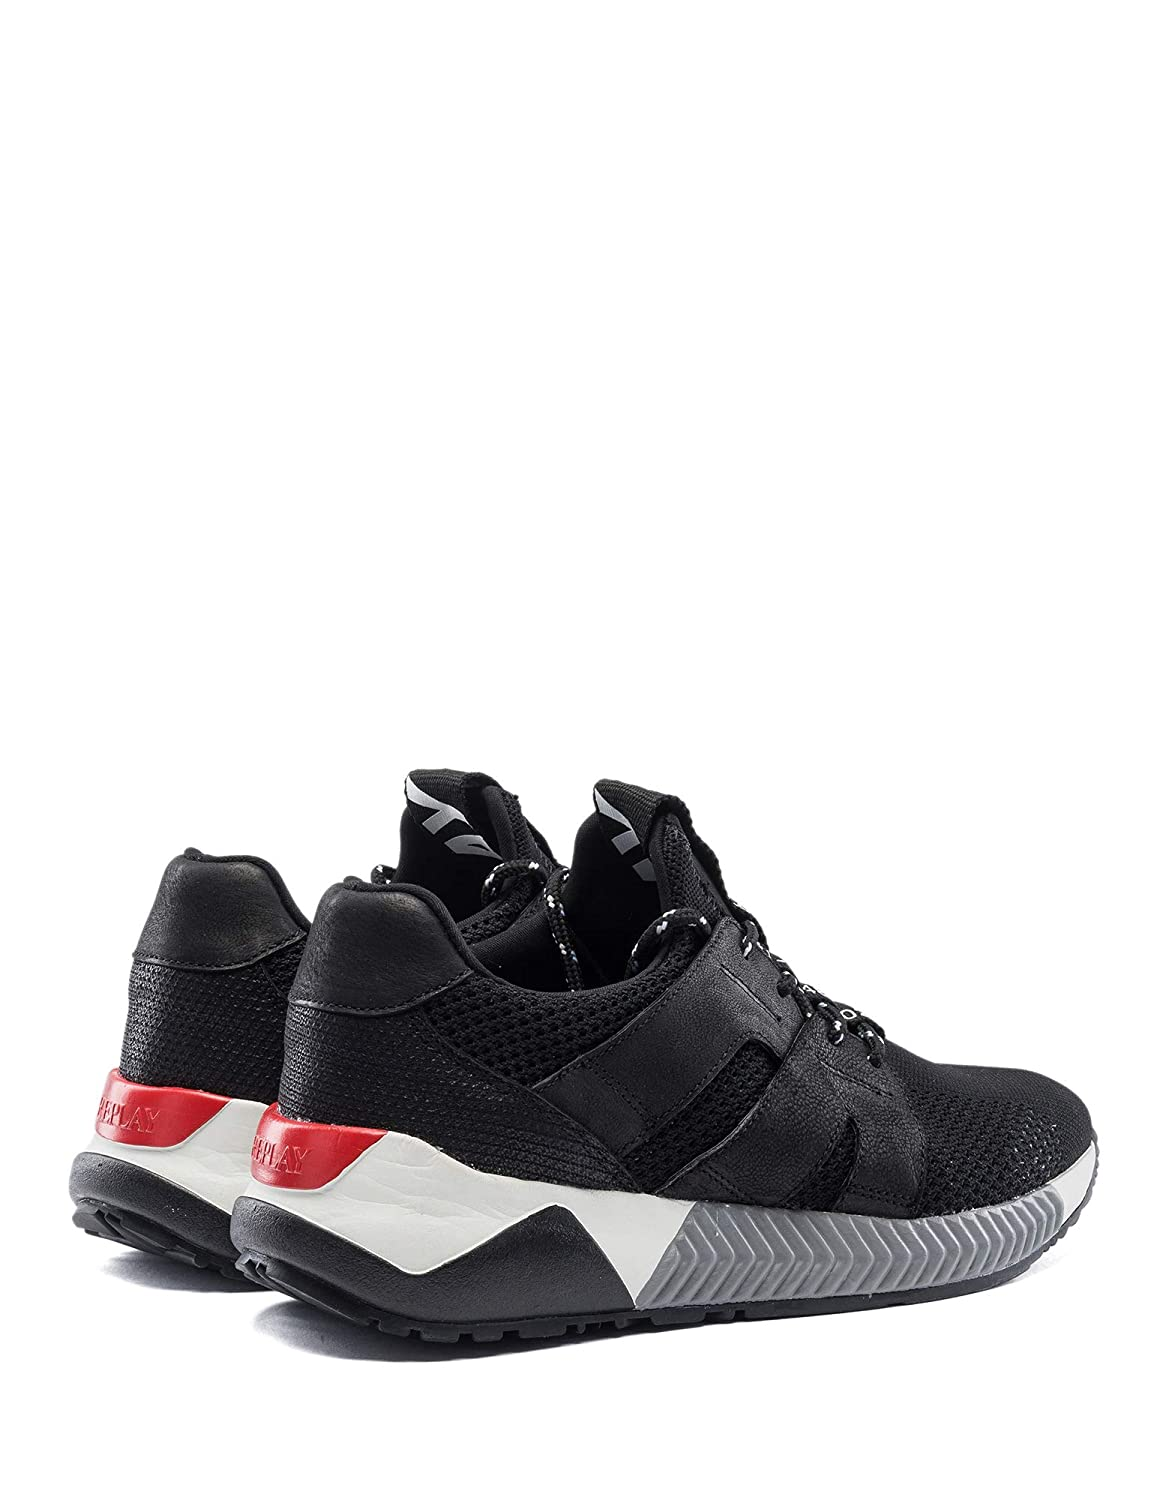 Replay Men's Elwood Lace Up Sneakers: : Schuhe